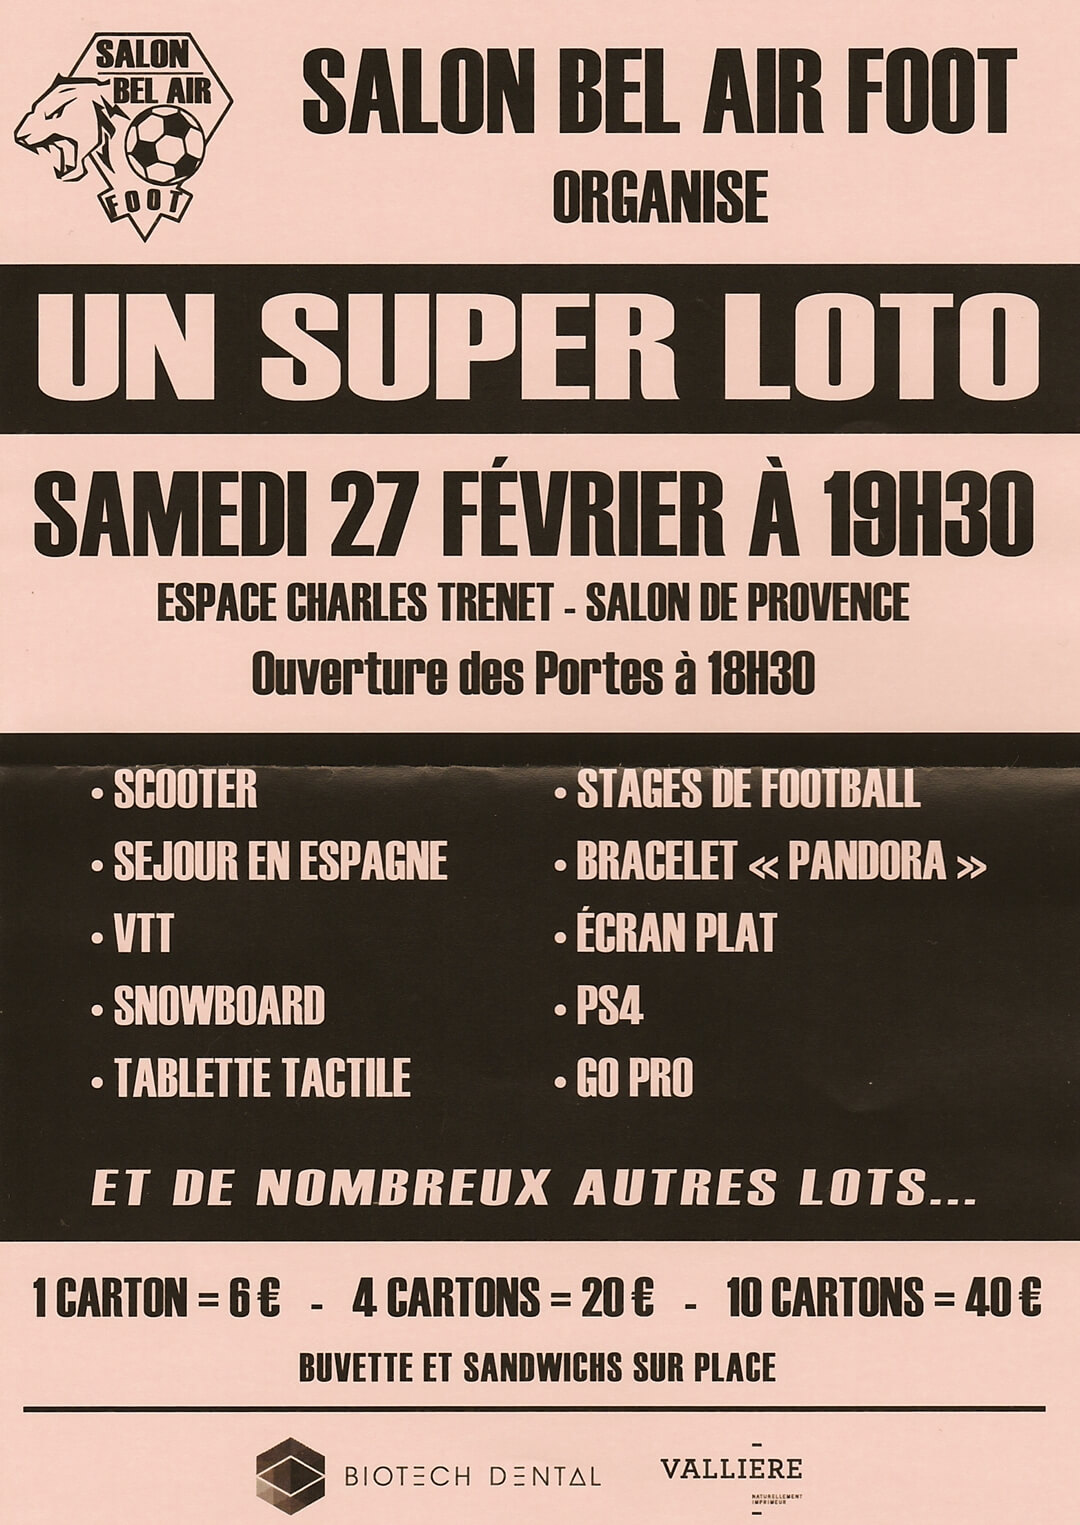 Loto sbf foot salon de provence